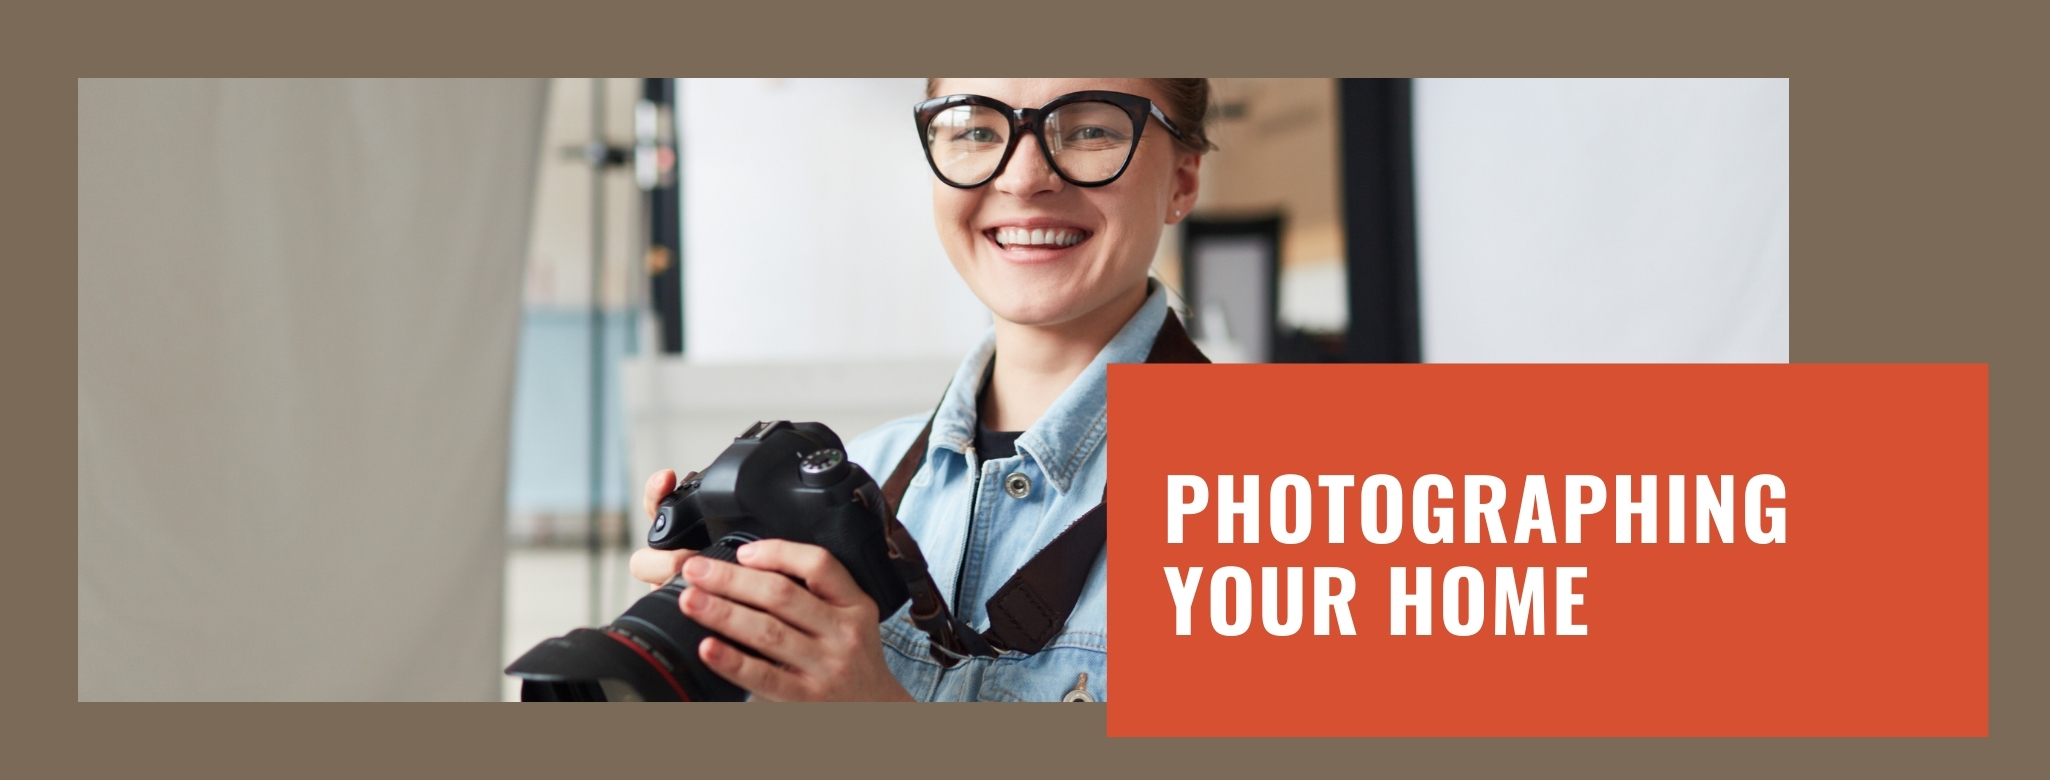 Photographing Your Home